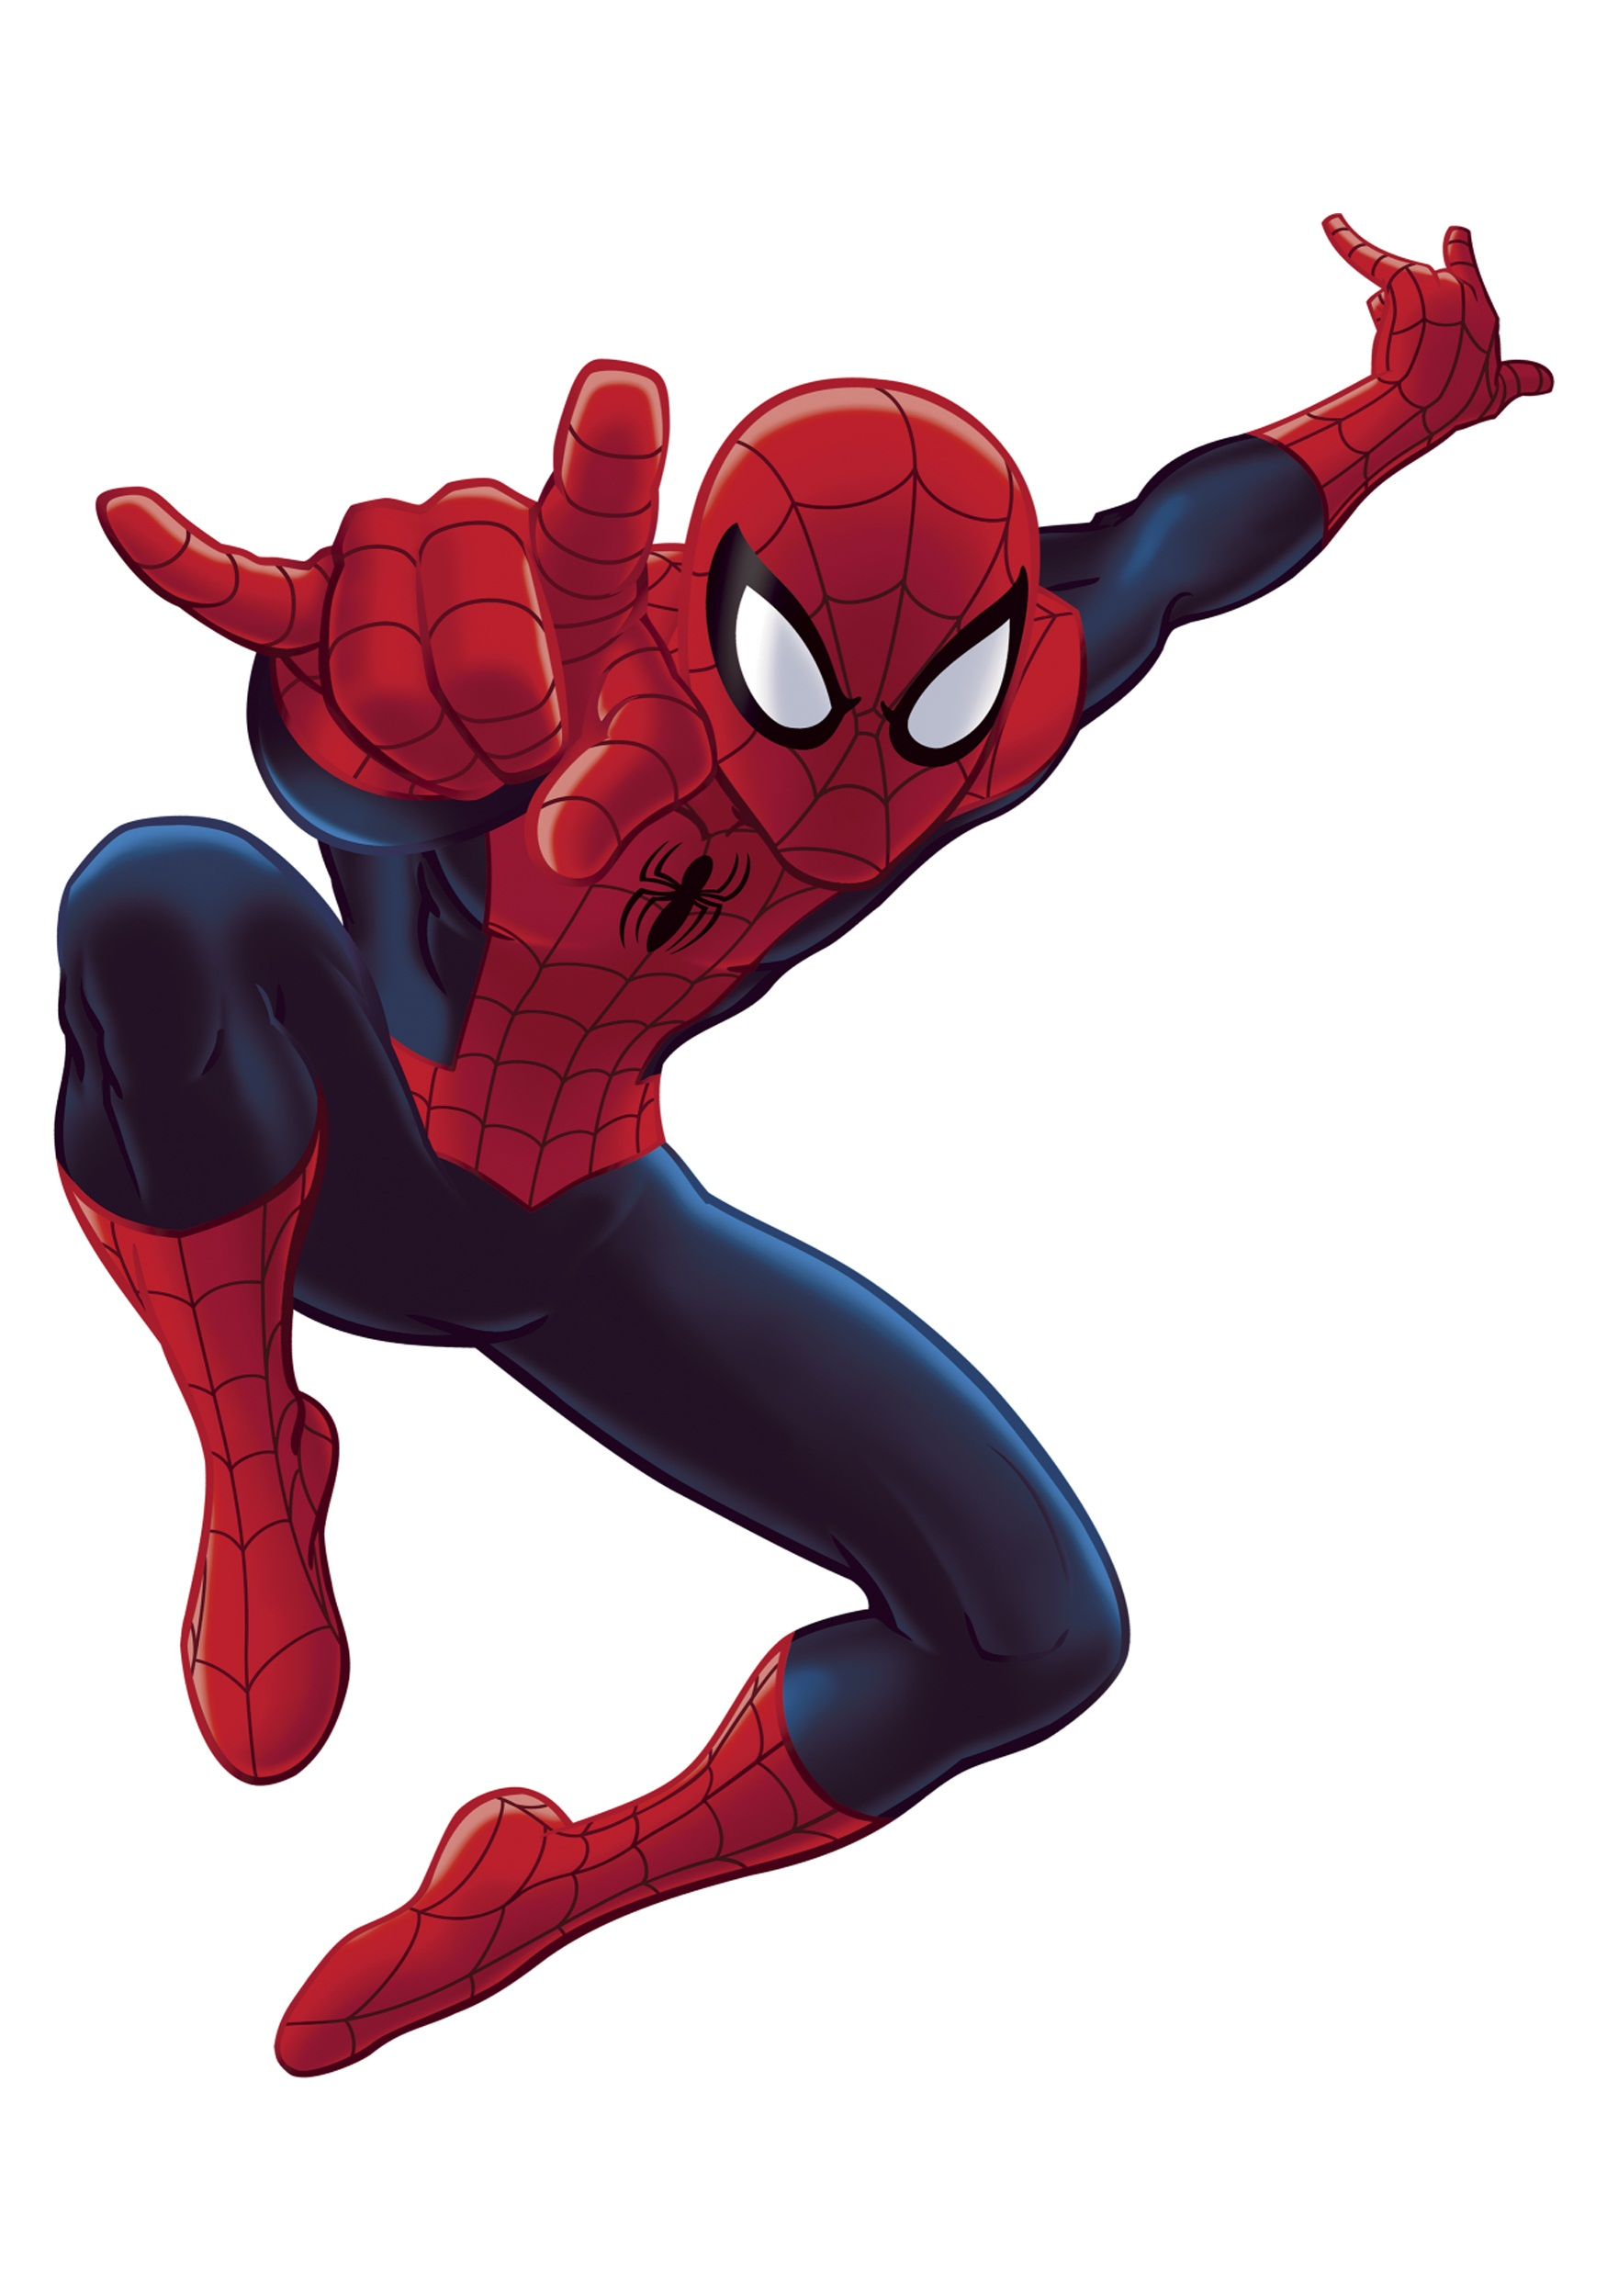 Spiderman Images Free - Cliparts.co